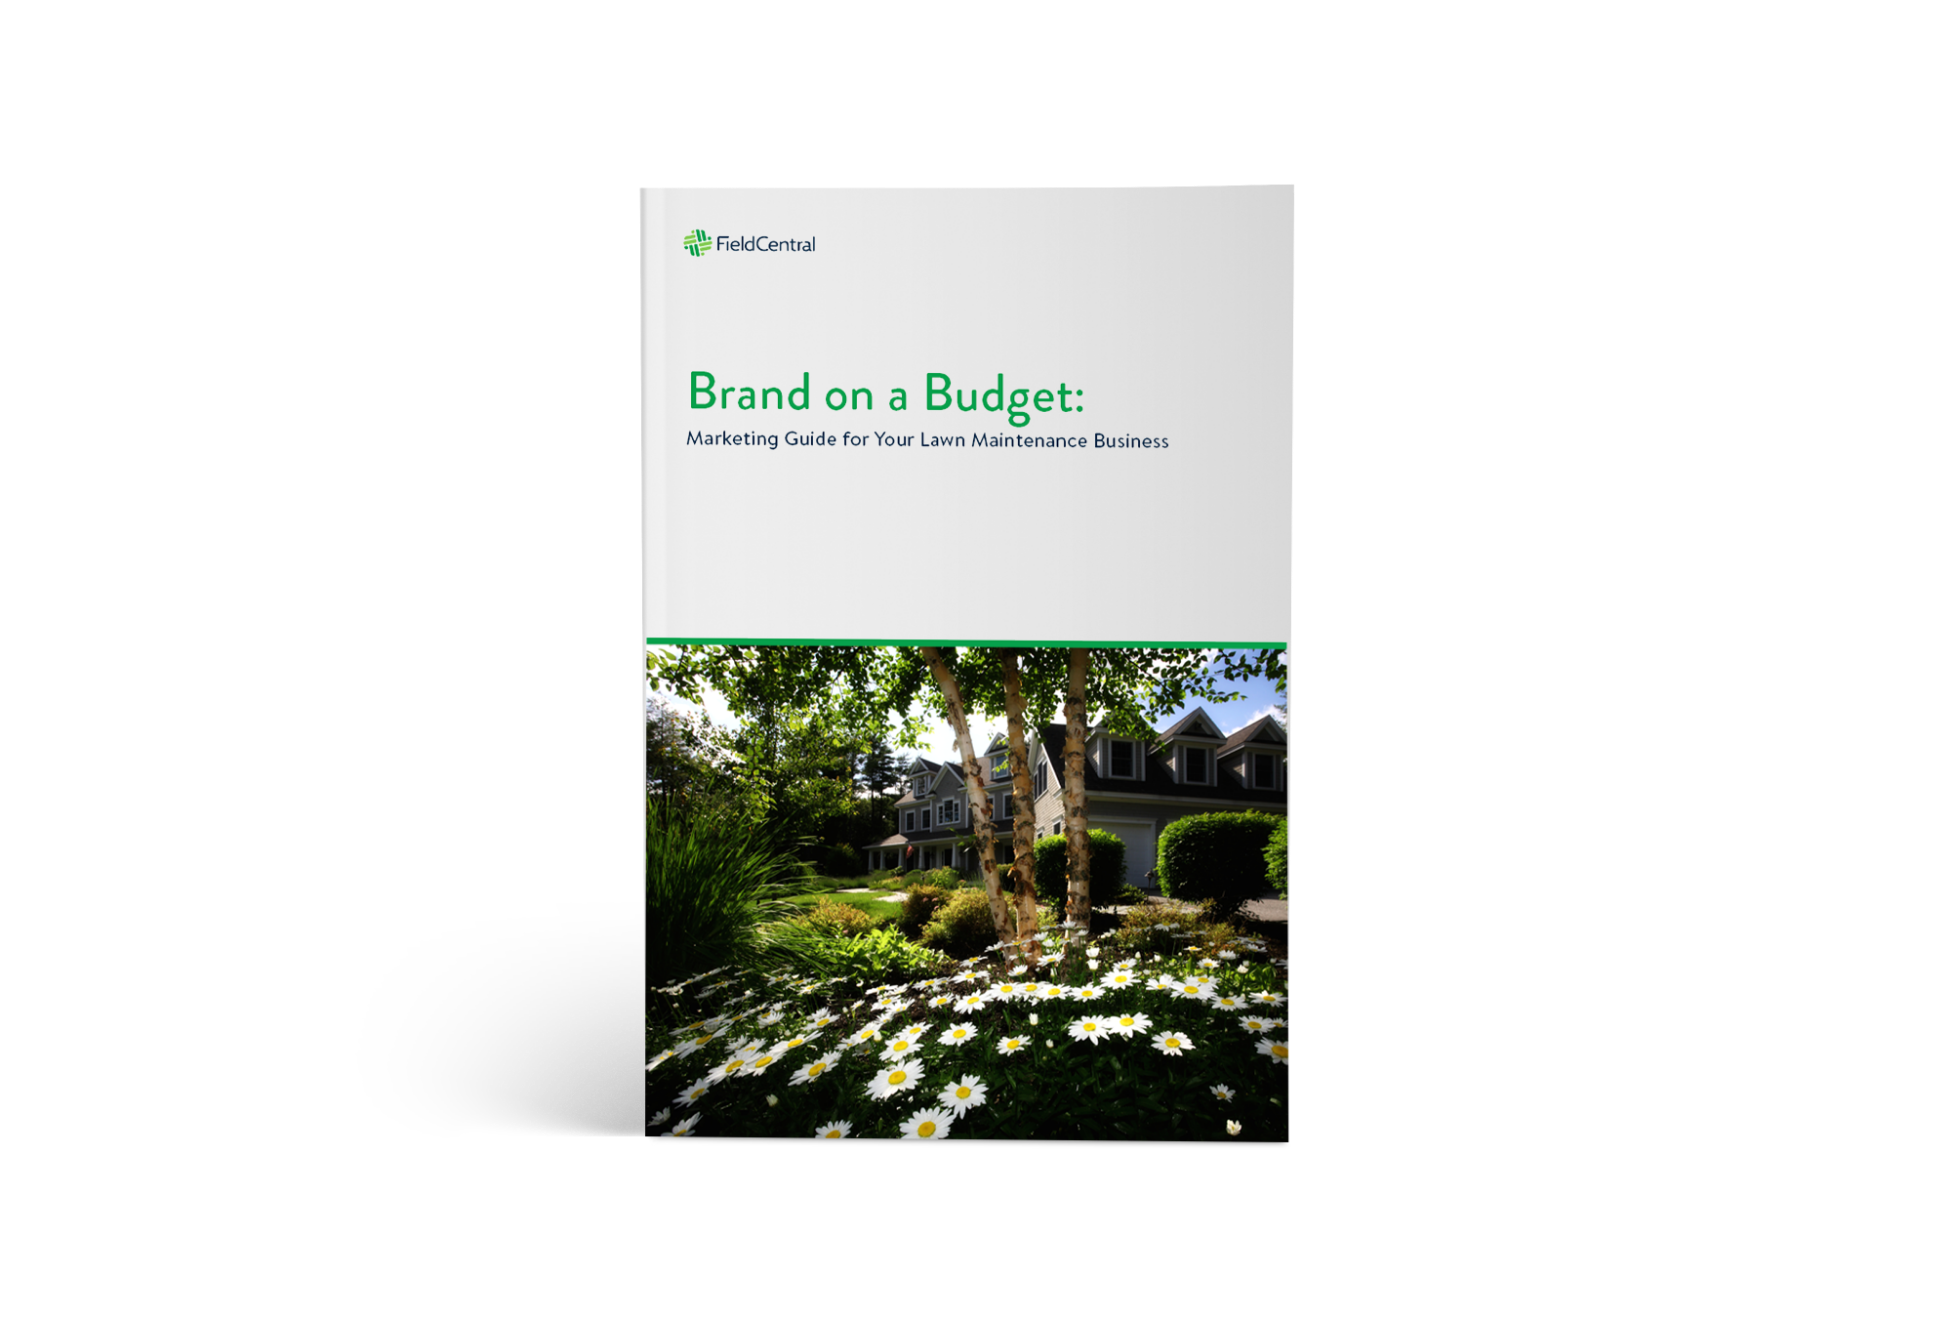 Brand on a Budget: Marketing Guide for Your Lawn Maintenance Business ebook cover.